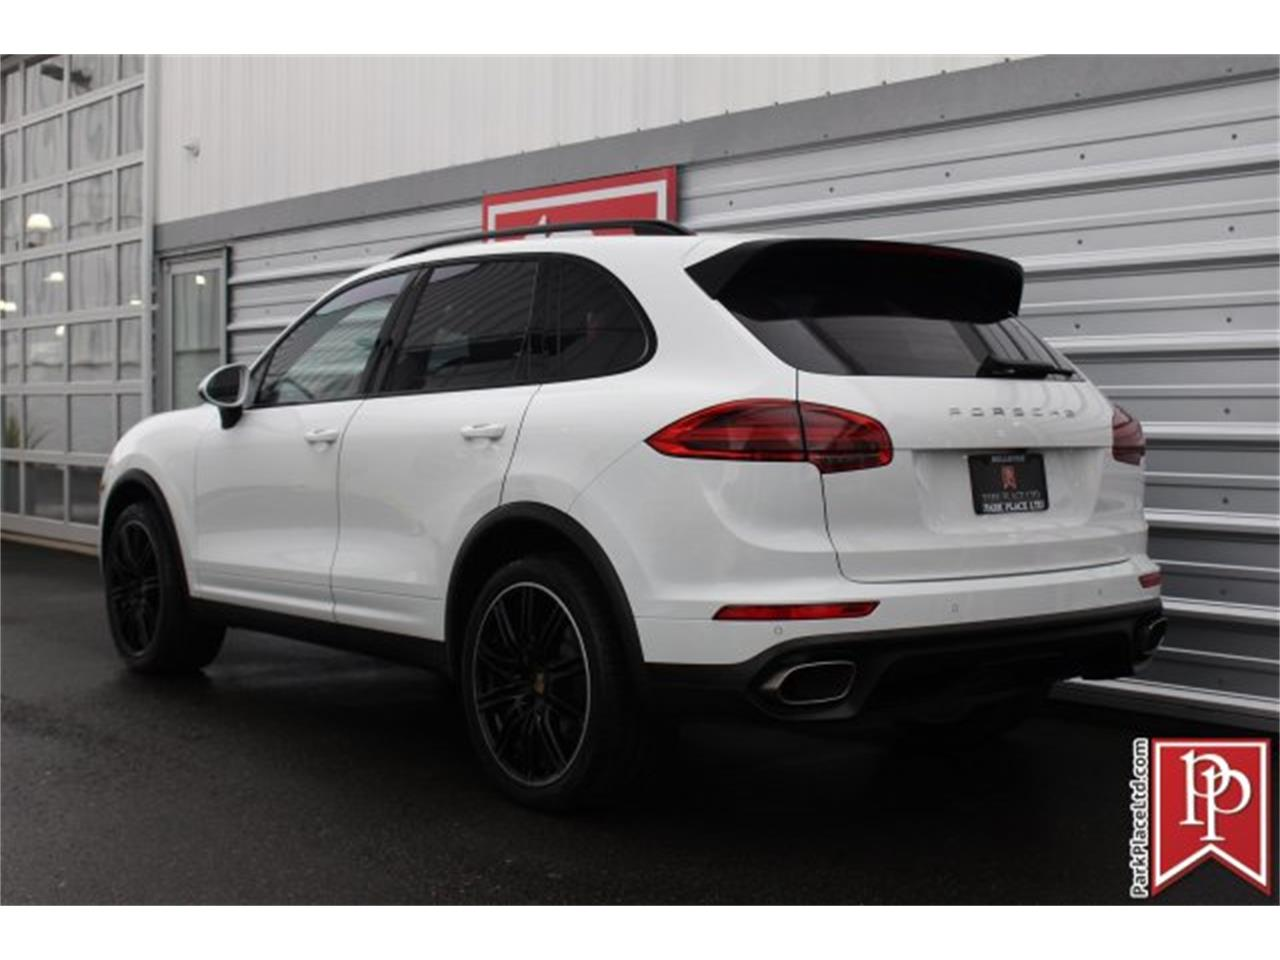 2015 Porsche Cayenne for sale in Bellevue, WA – photo 5